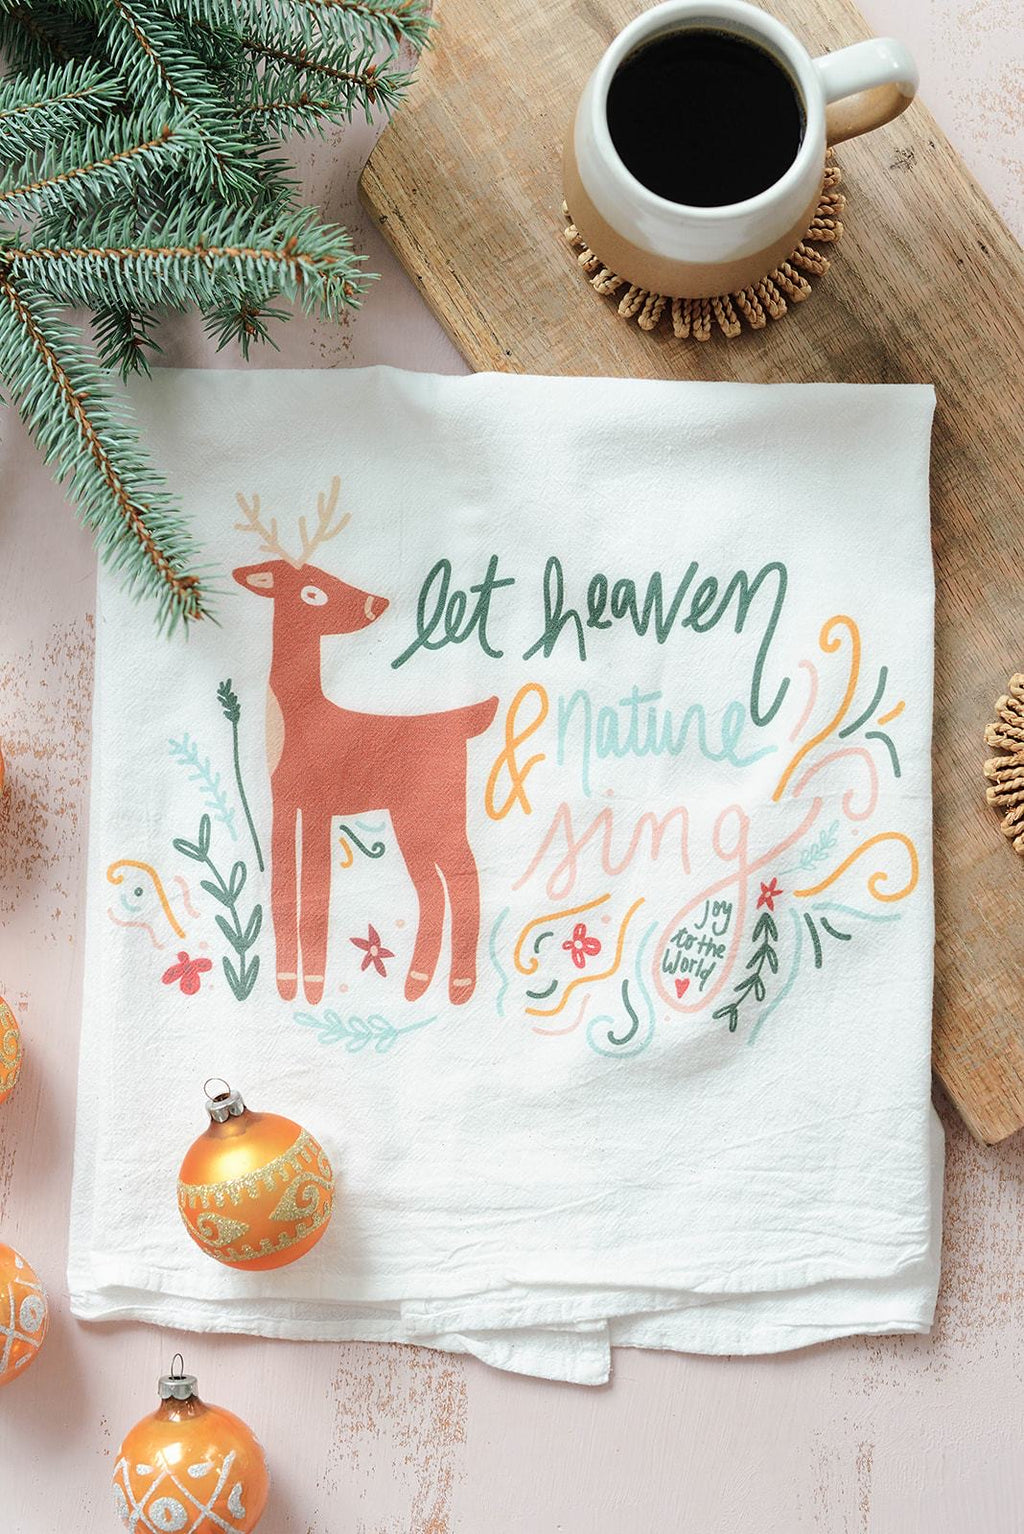 Heaven and Nature Sing Towel